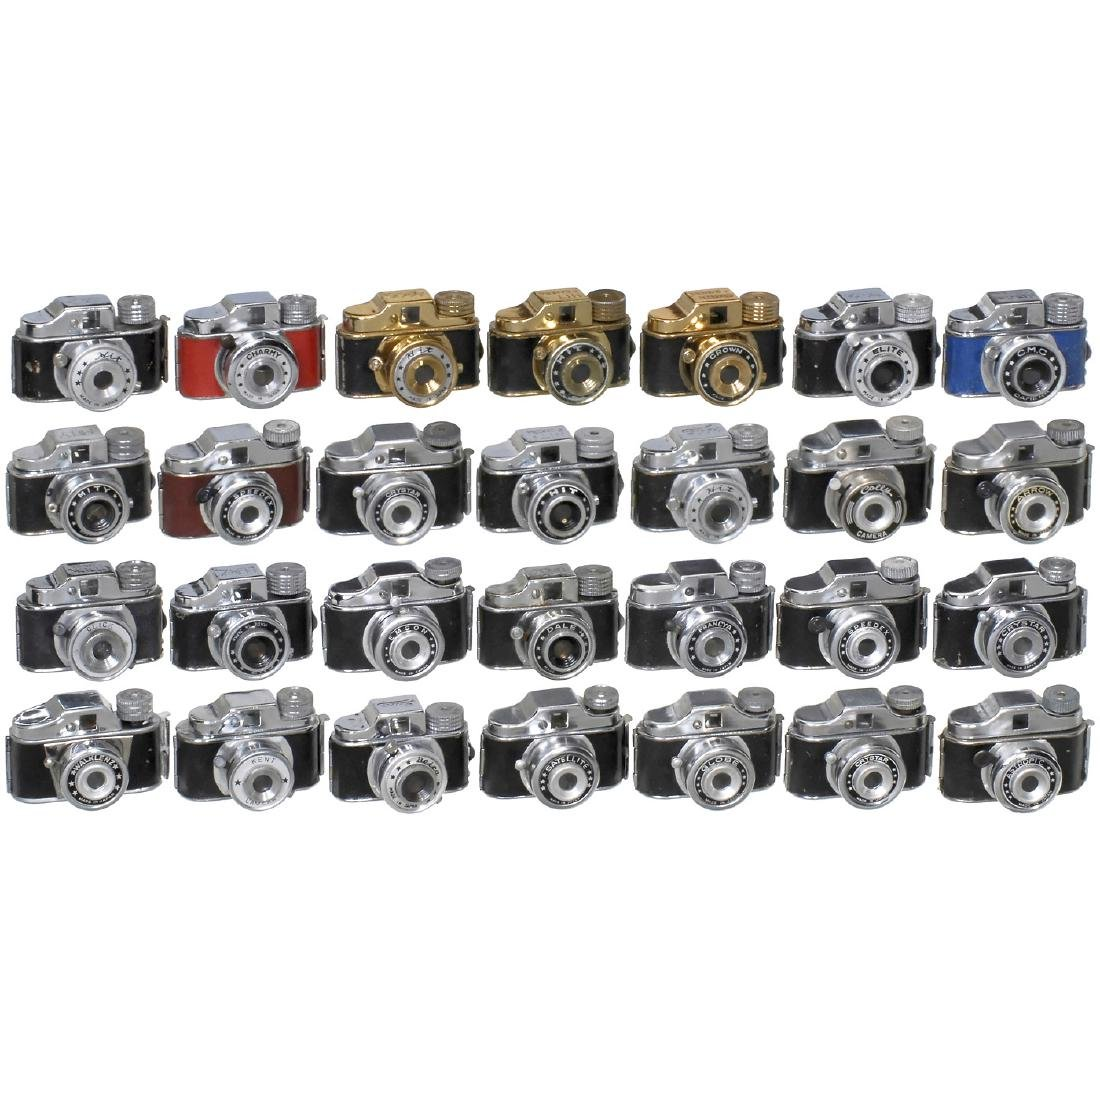 28 Hit-Type Cameras, 1950s